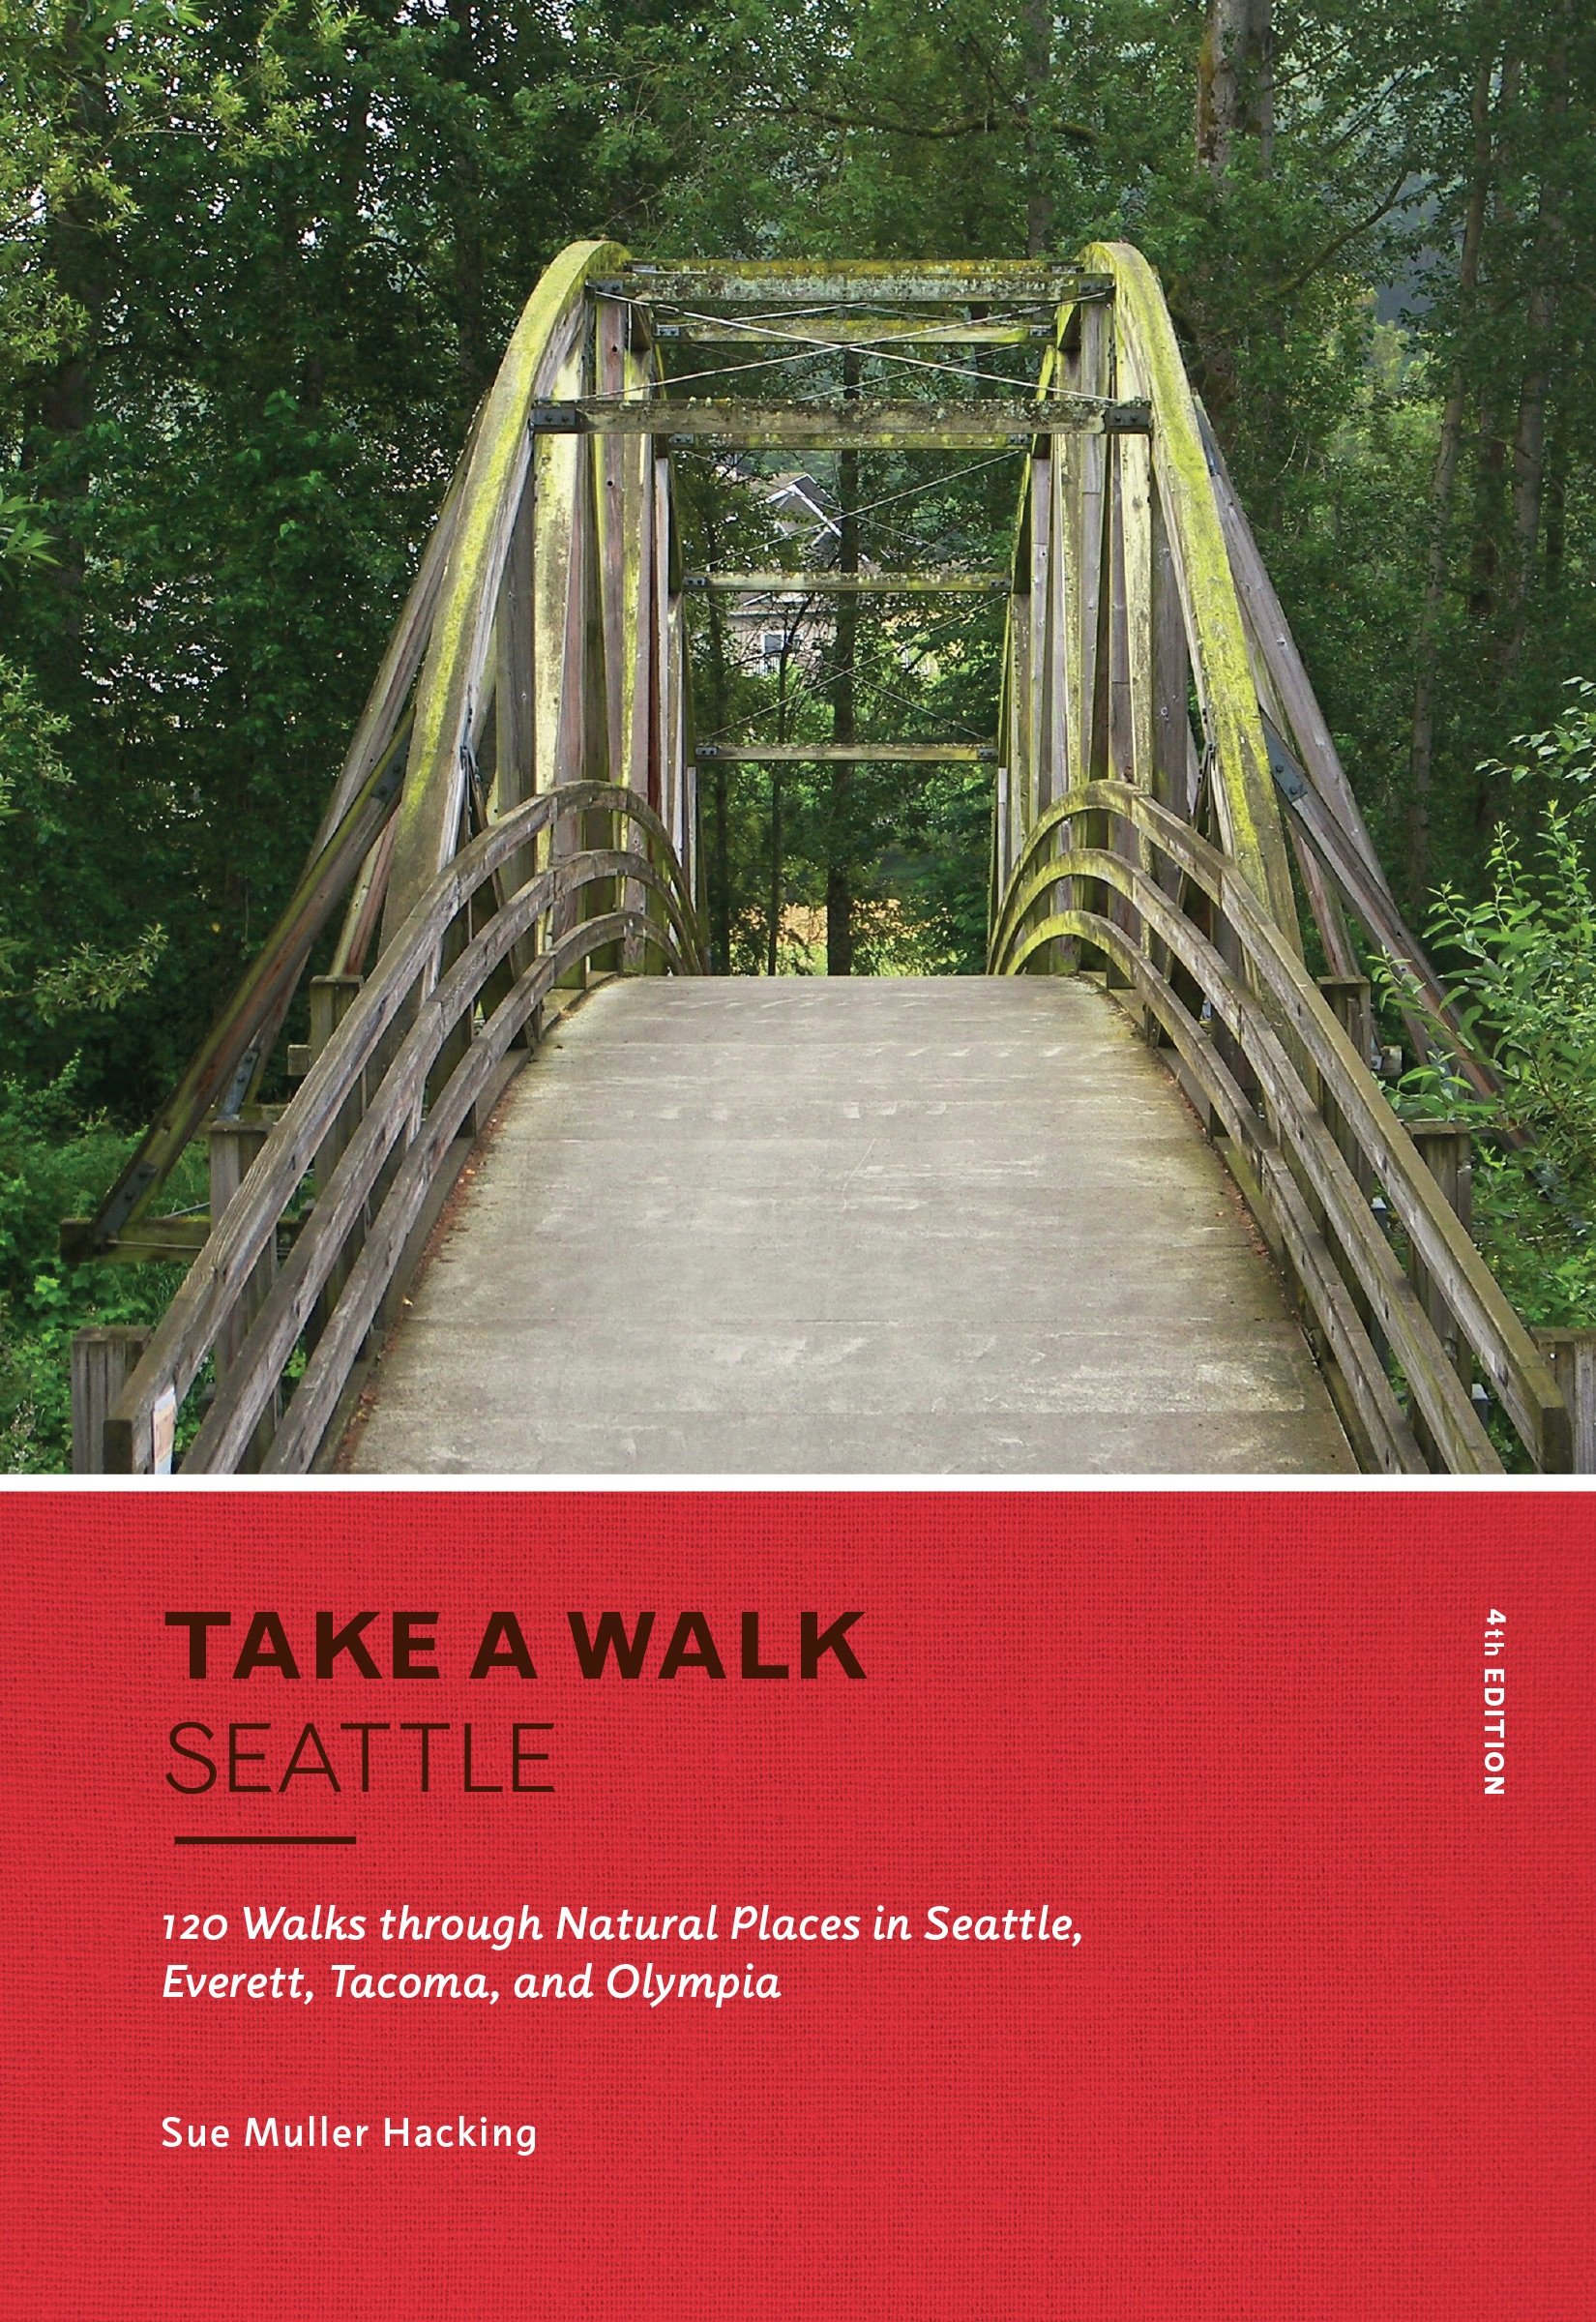 Book Review: Take A Walk: Seattle by Sue Muller Hacking